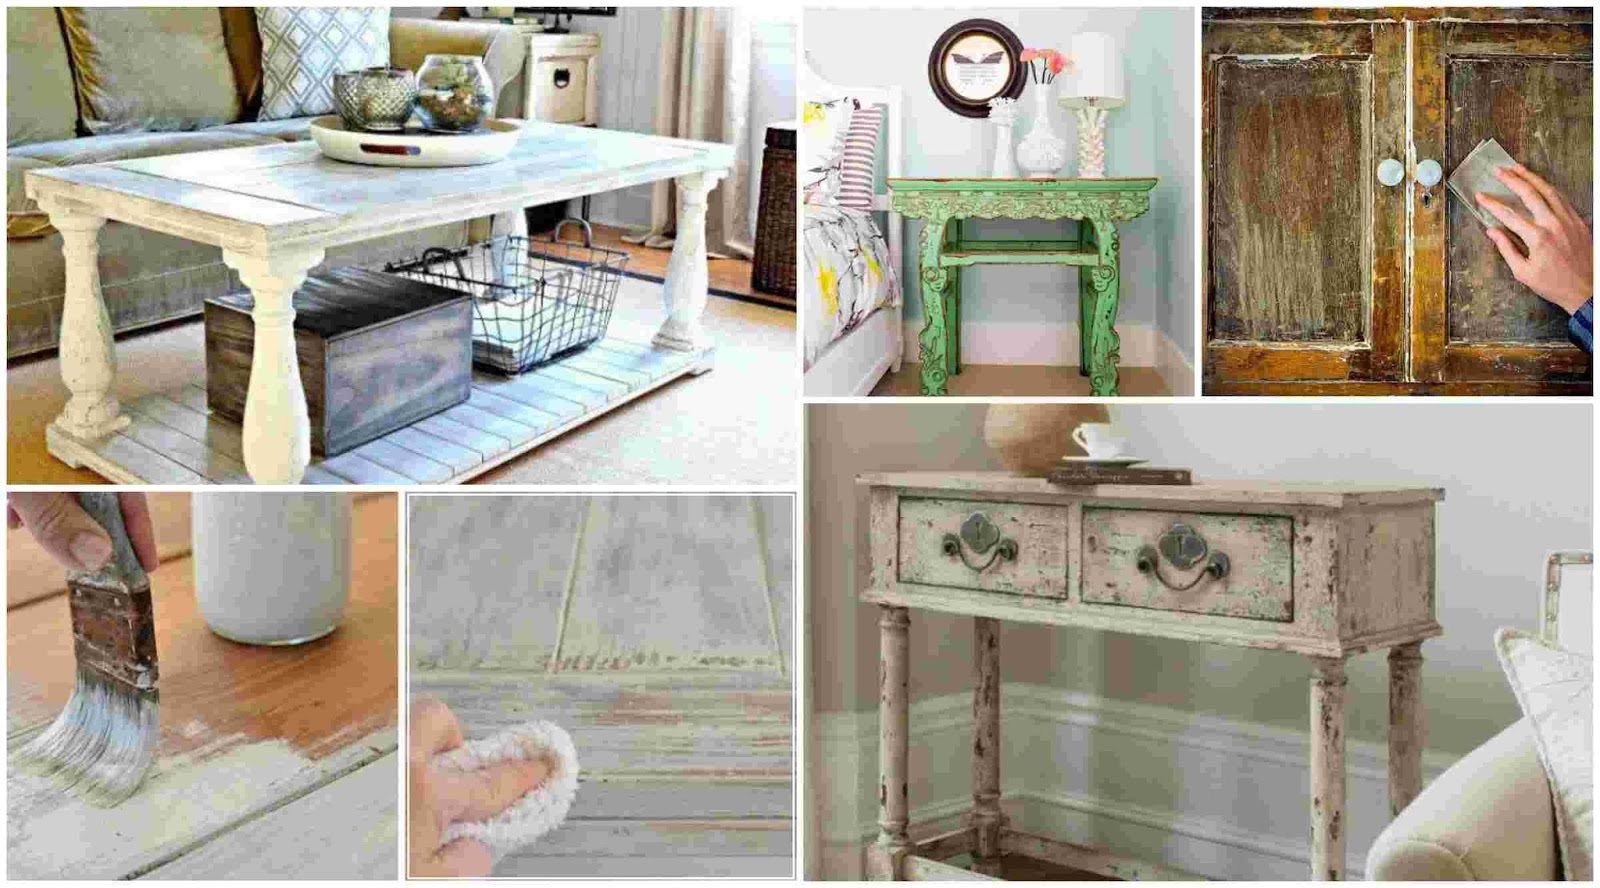 Vintage furniture  shabby chic and country are very fashionable and look  perfect even in a modern setting  But authentic antique furniture are often  too. Vintage furniture   3 easy techniques to make wood patina   Diy